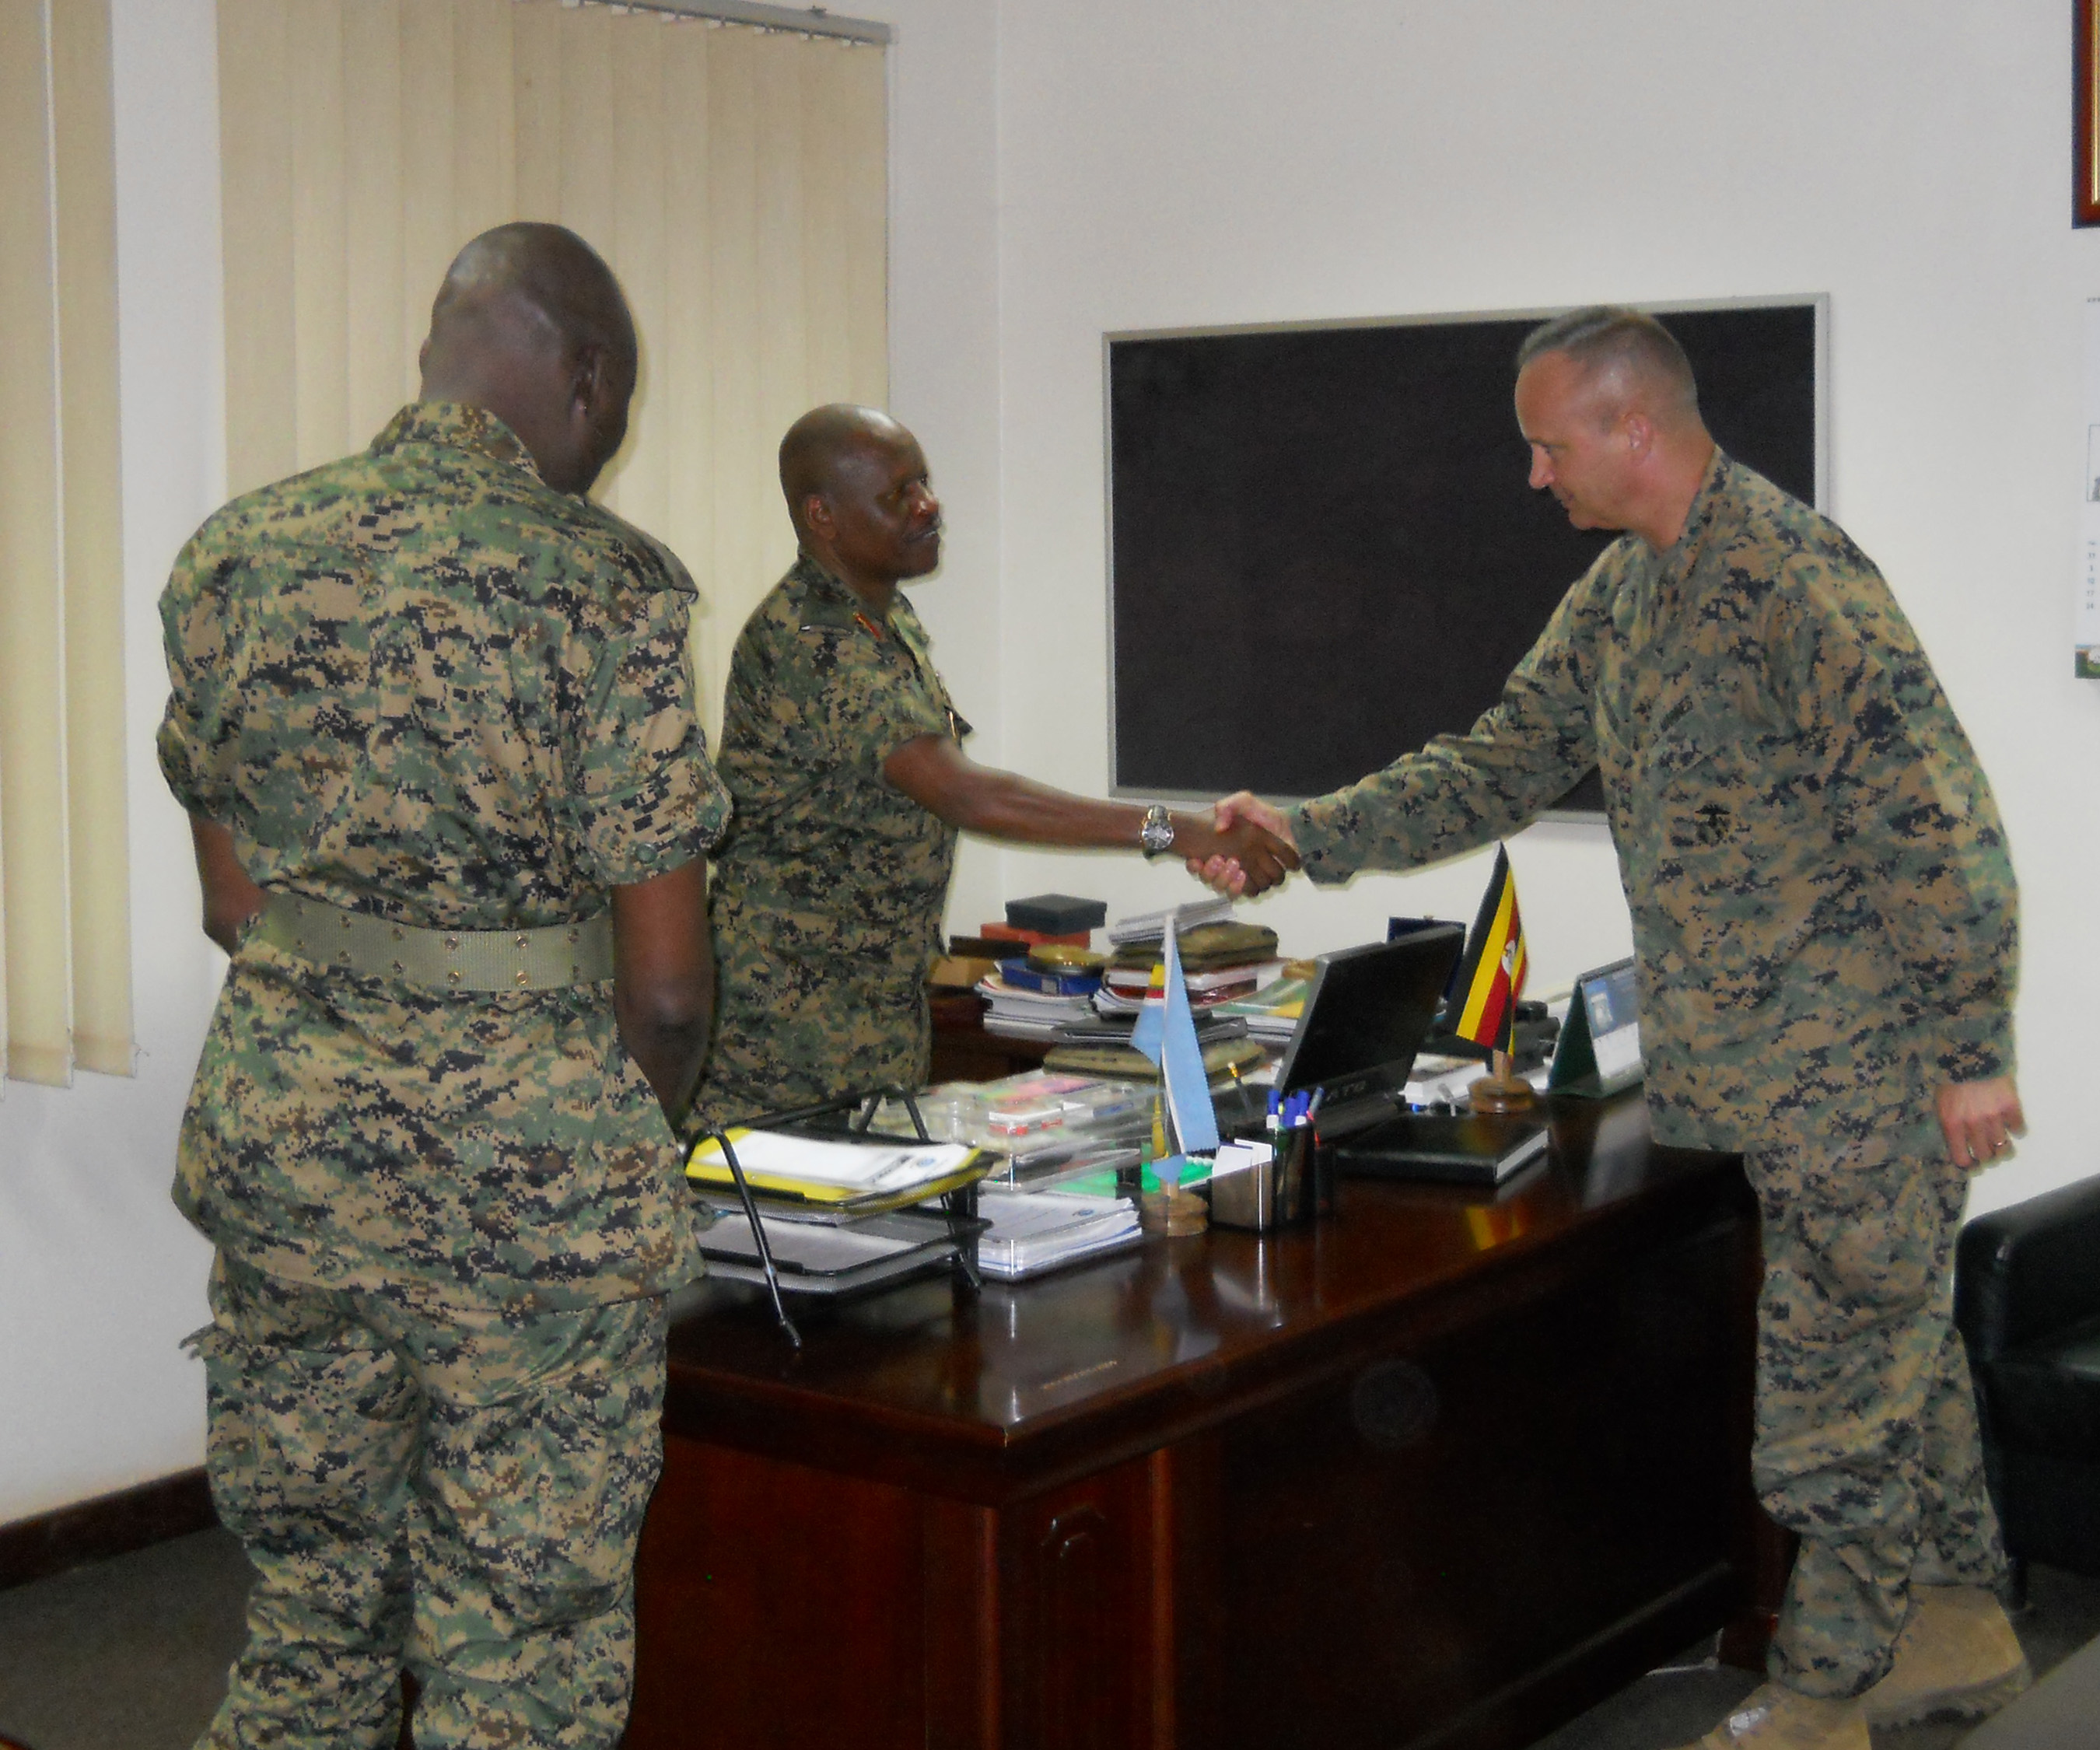 Lt. Gen. Wilson Mbadi, the Deputy Chief of Uganda People's Defense Force (middle) greets Combined Joint Task Force-Horn of Africa commander U.S. Marine Corps Brig. Gen. David Furness (right) for an office call during a recent visit to an historic UPDF engineering course graduation at the Uganda Rapid Deployment Capability Center, based in Jinja, Uganda. The two military leaders, along with Uganda Rapid Deployment Capability Center commandant Maj. Gen. James Nnkibus Lakara (far left) discussed shared interests, including partnership opportunities for future courses. In the latest iteration of the engineering course, UPDF trainers were advised by U.S. Marine Corps partners from the Special Purpose Marine Air-Ground Task Force-Crisis Response-Africa. (Courtesy photo by Uganda Army Lt. Col. Nelson Aheebwa)